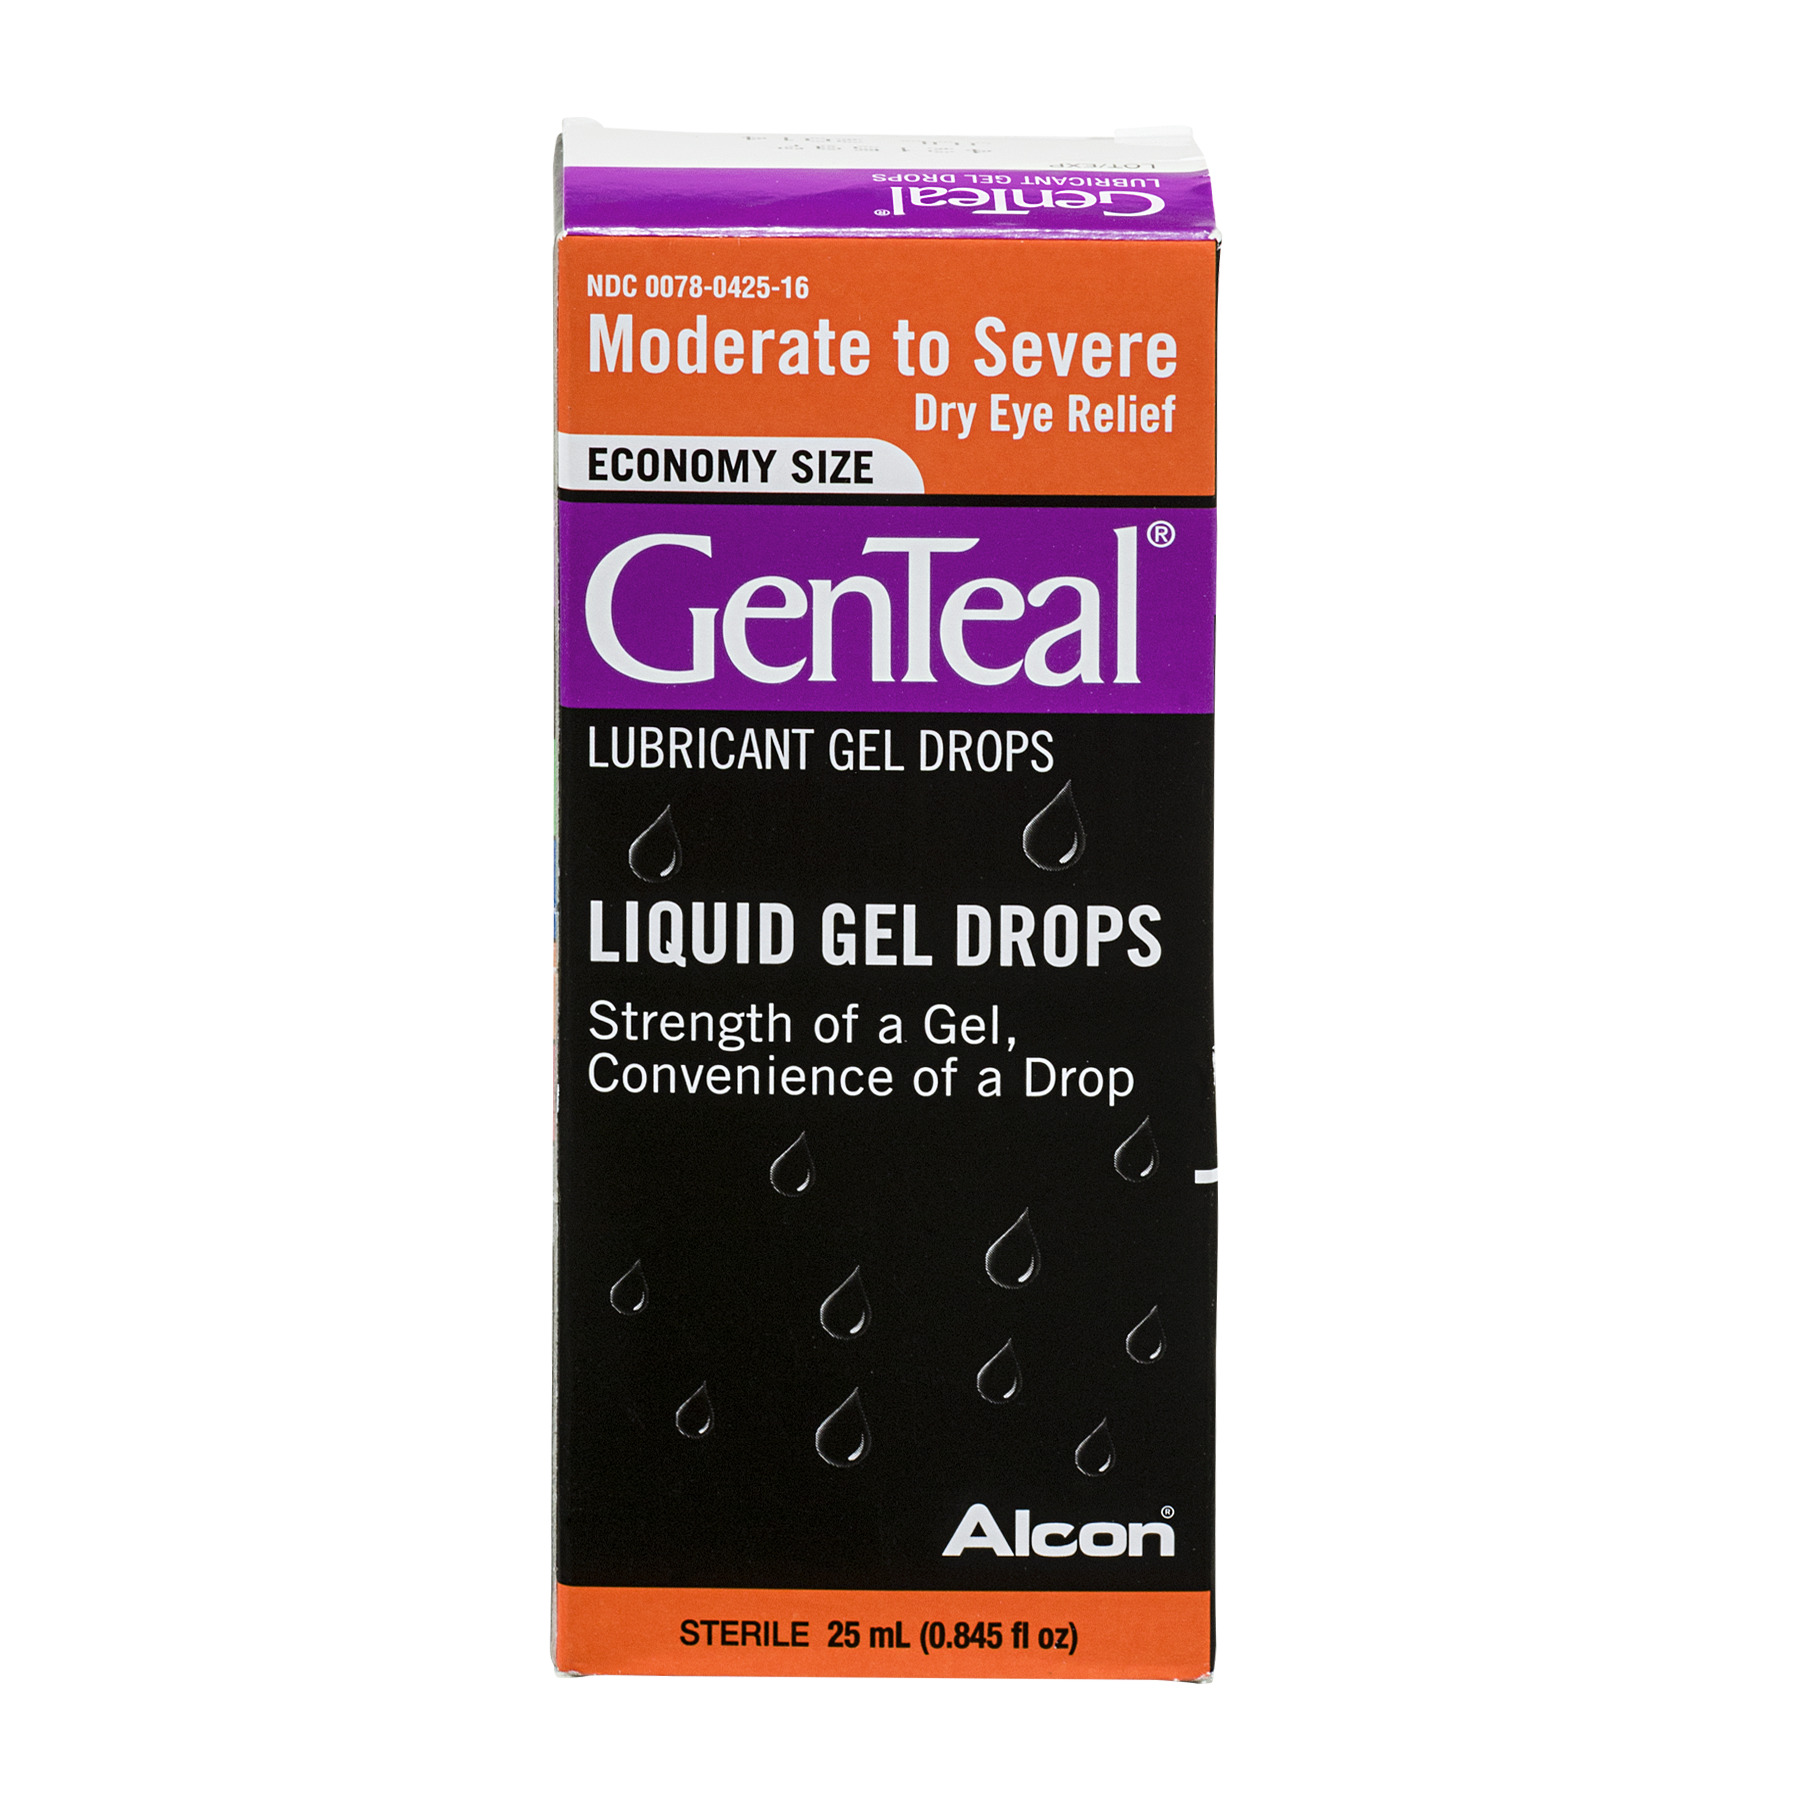 GenTeal Economy Size Liquid Gel Drops Moderate to Severe Dry Eye Relief, 0.845 FL OZ